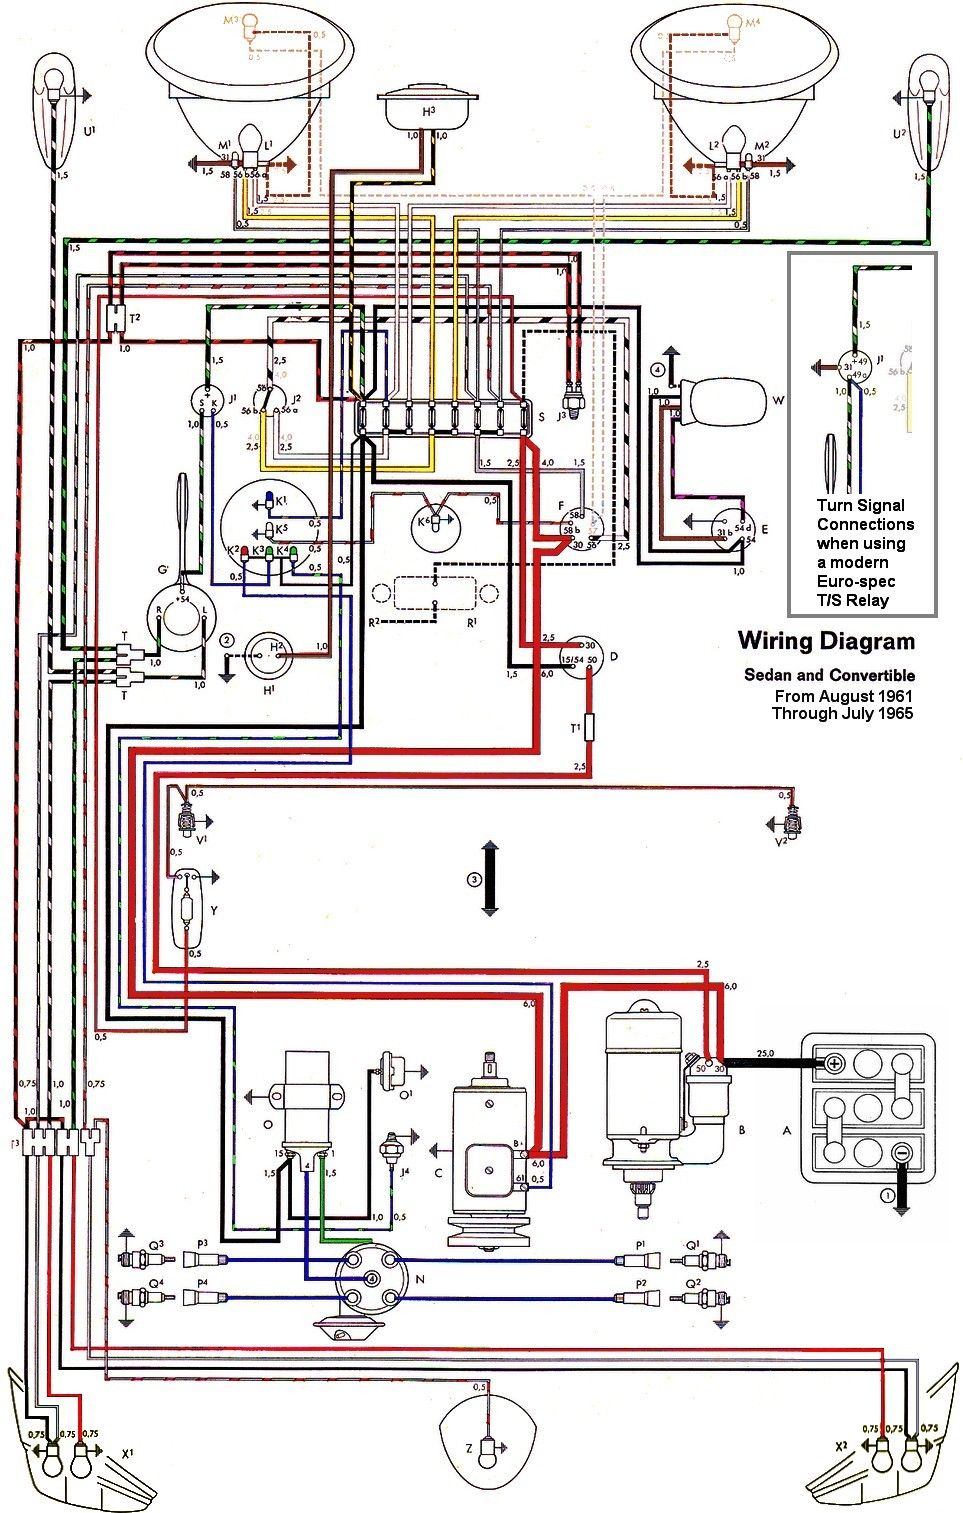 medium resolution of wiring diagram vw beetle sedan and convertible 1961 1965 vw vw vw bug starter relay wiring